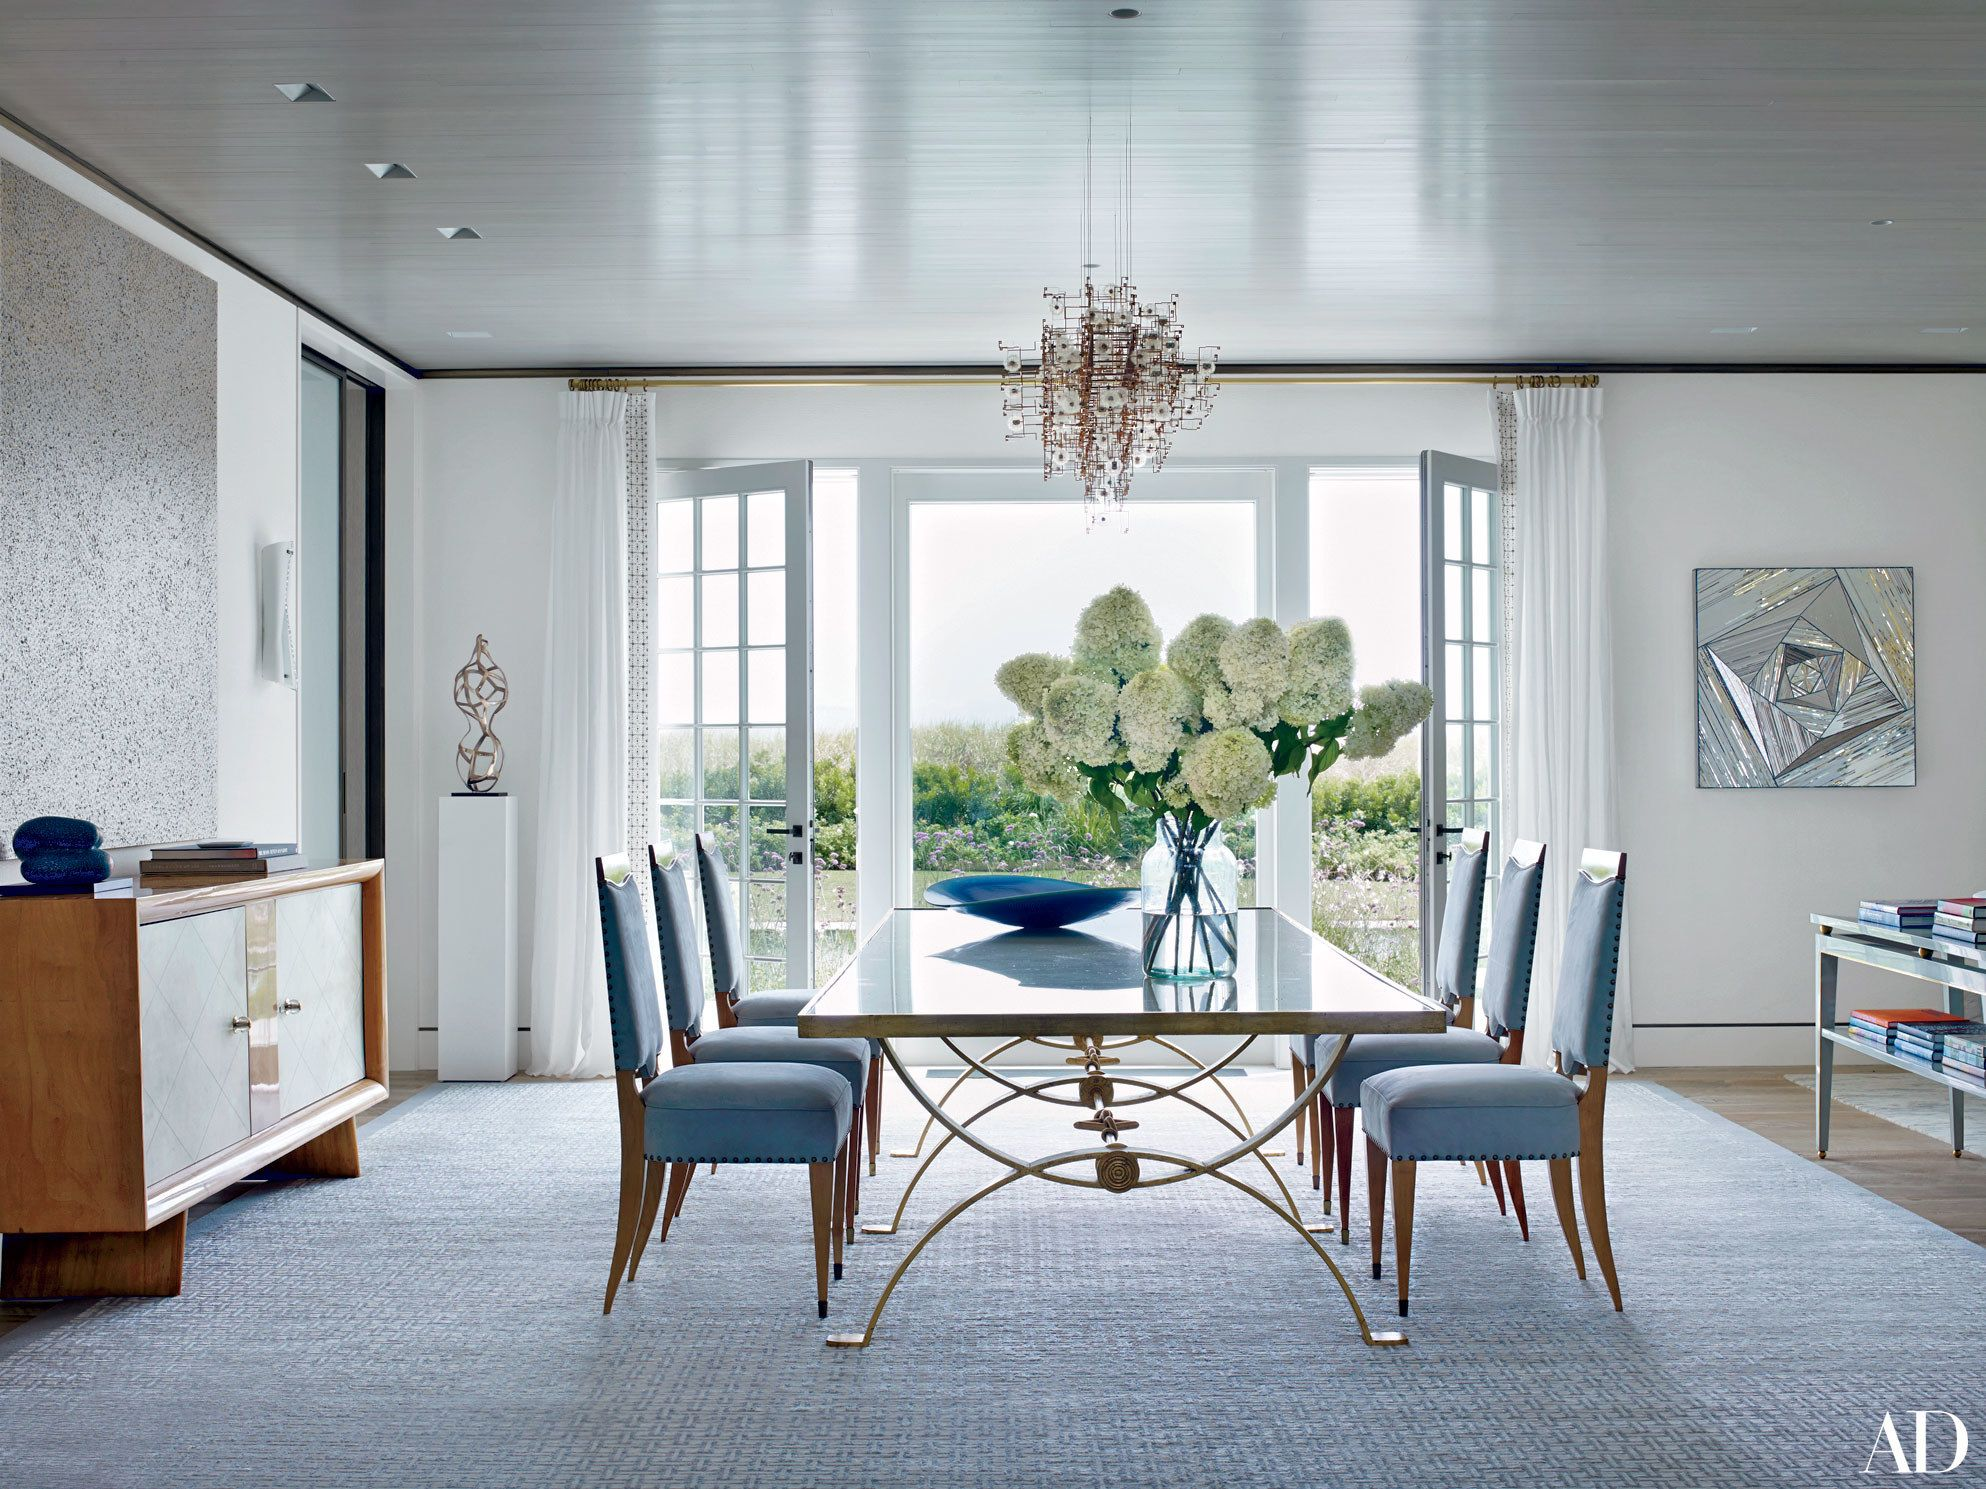 A Studio Drift Ceiling Light From Carpenters Workshop Gallery Hangs In The Dining Room Coastal Interior Of Neutrals And Ocean Hues